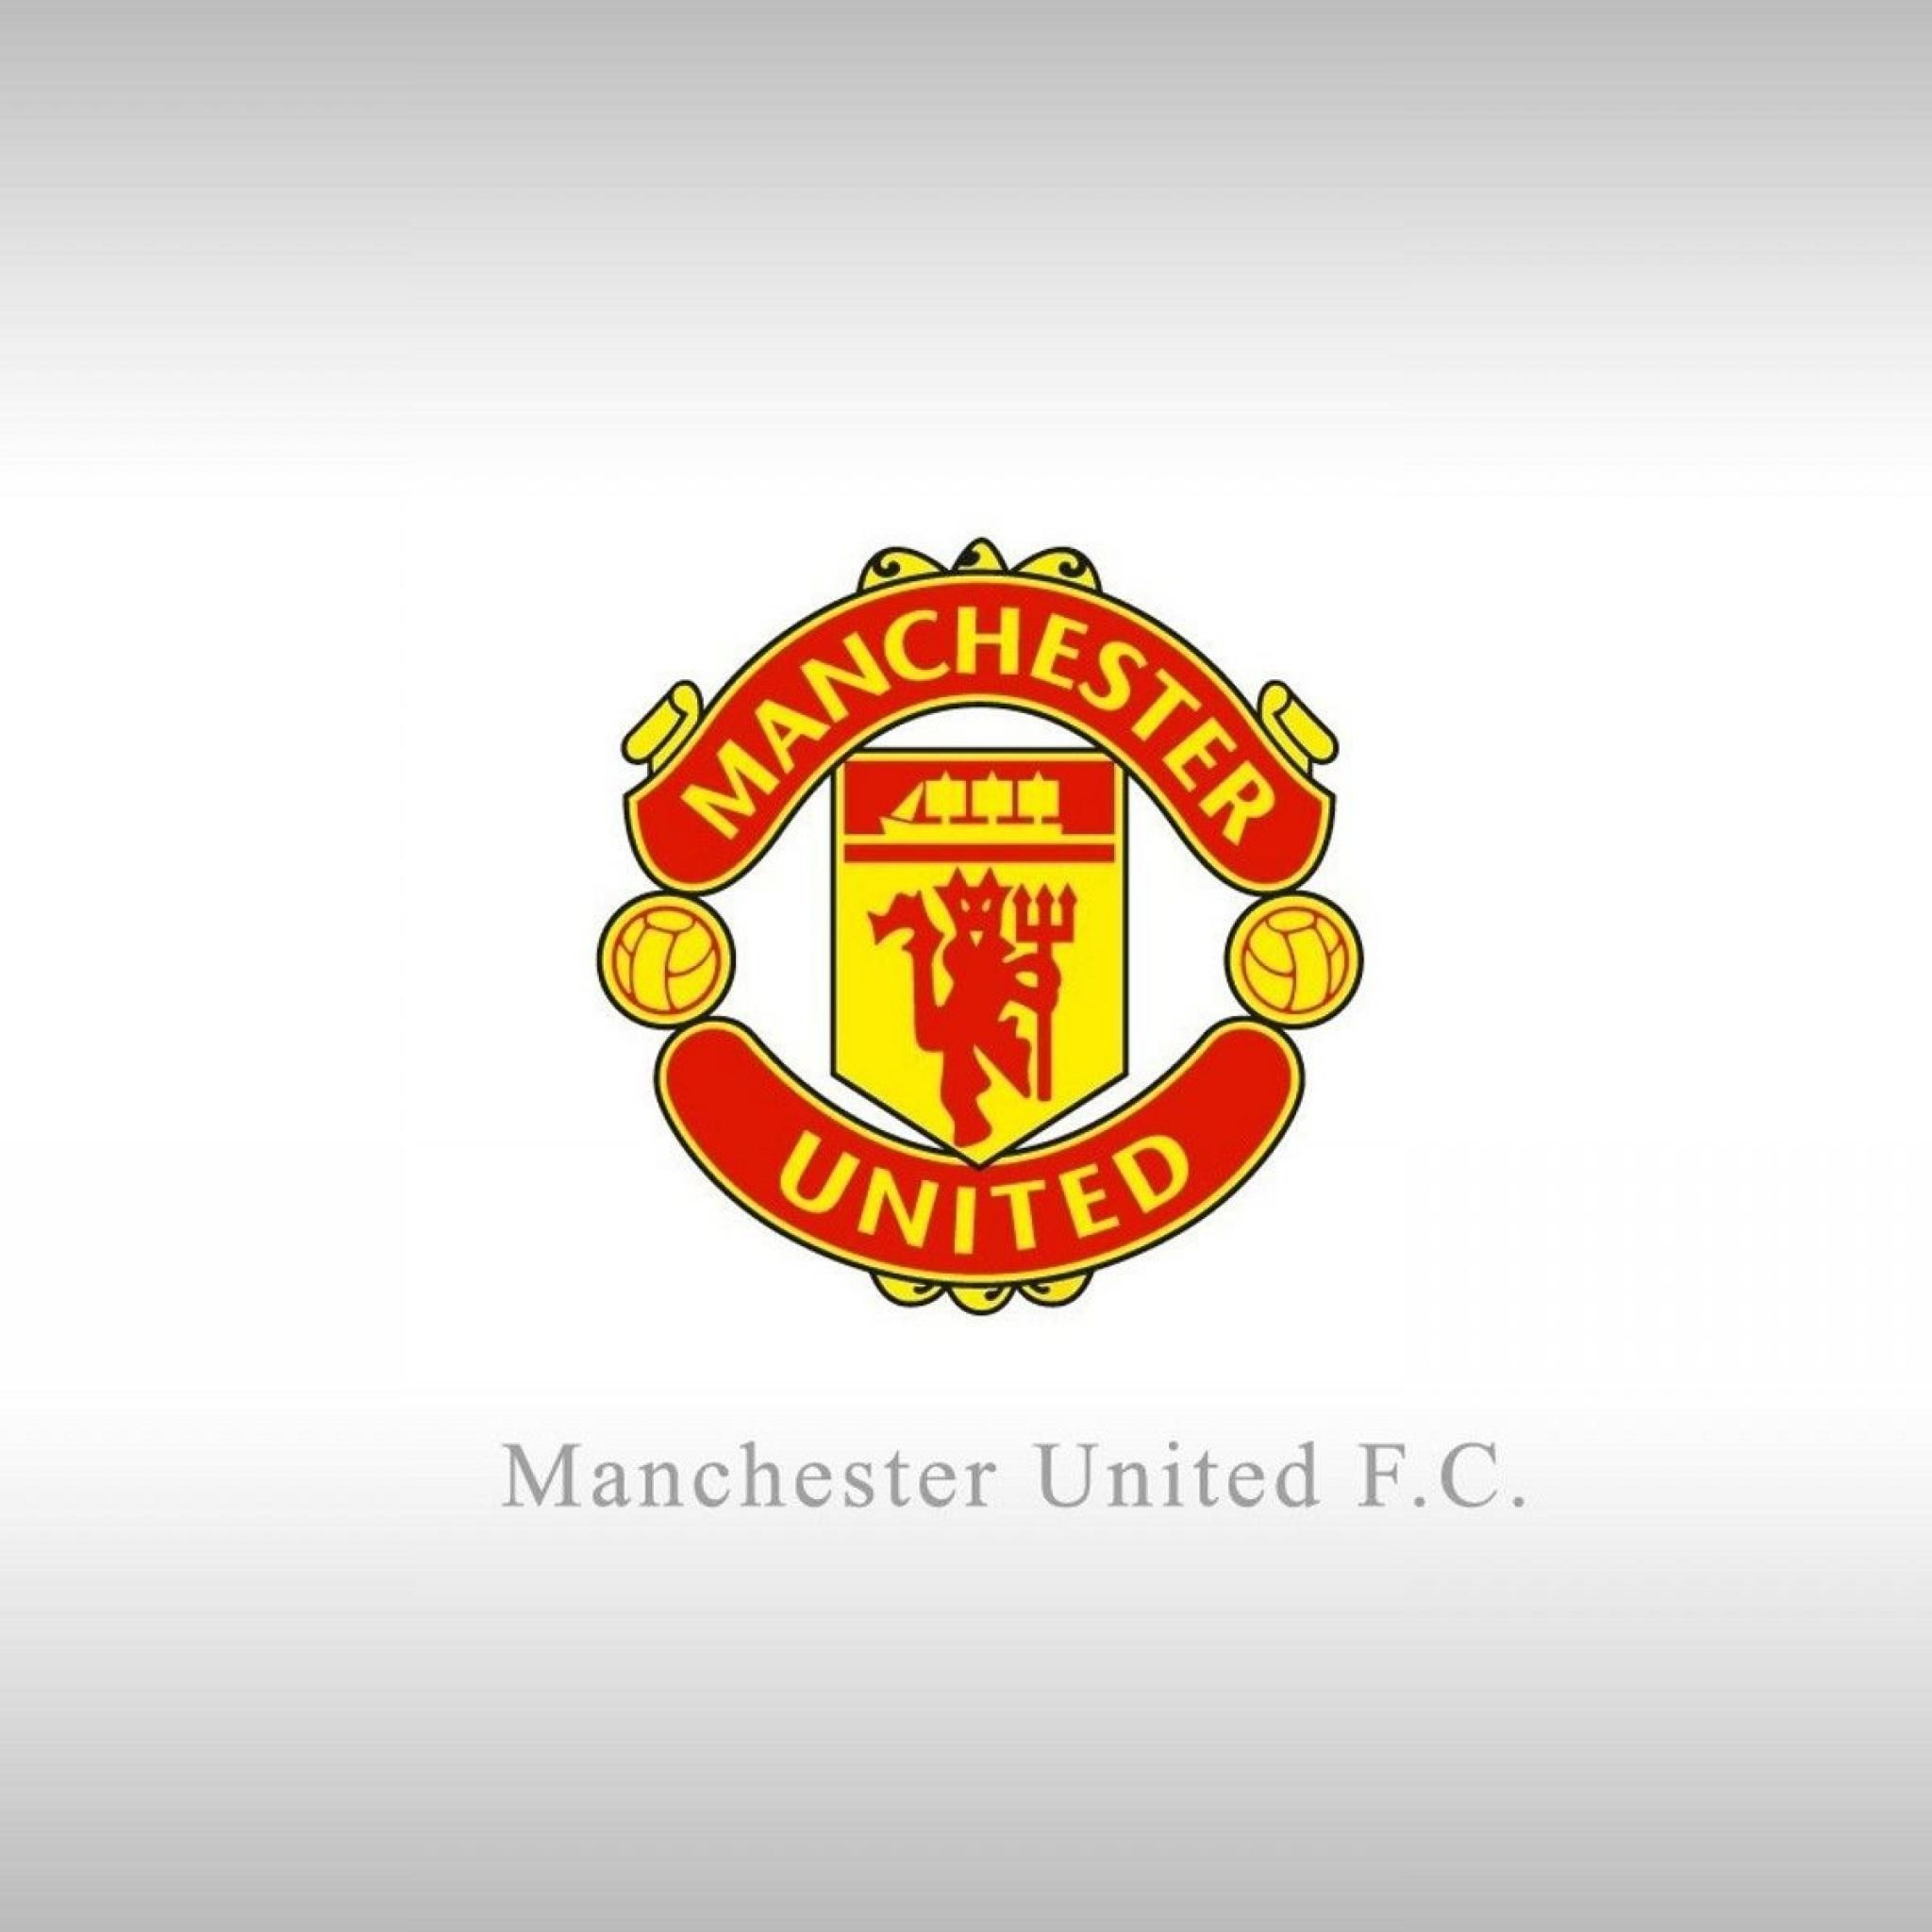 Manchester United Logo Free Large Images In 2020 Manchester United Wallpaper Manchester United Logo Manchester United